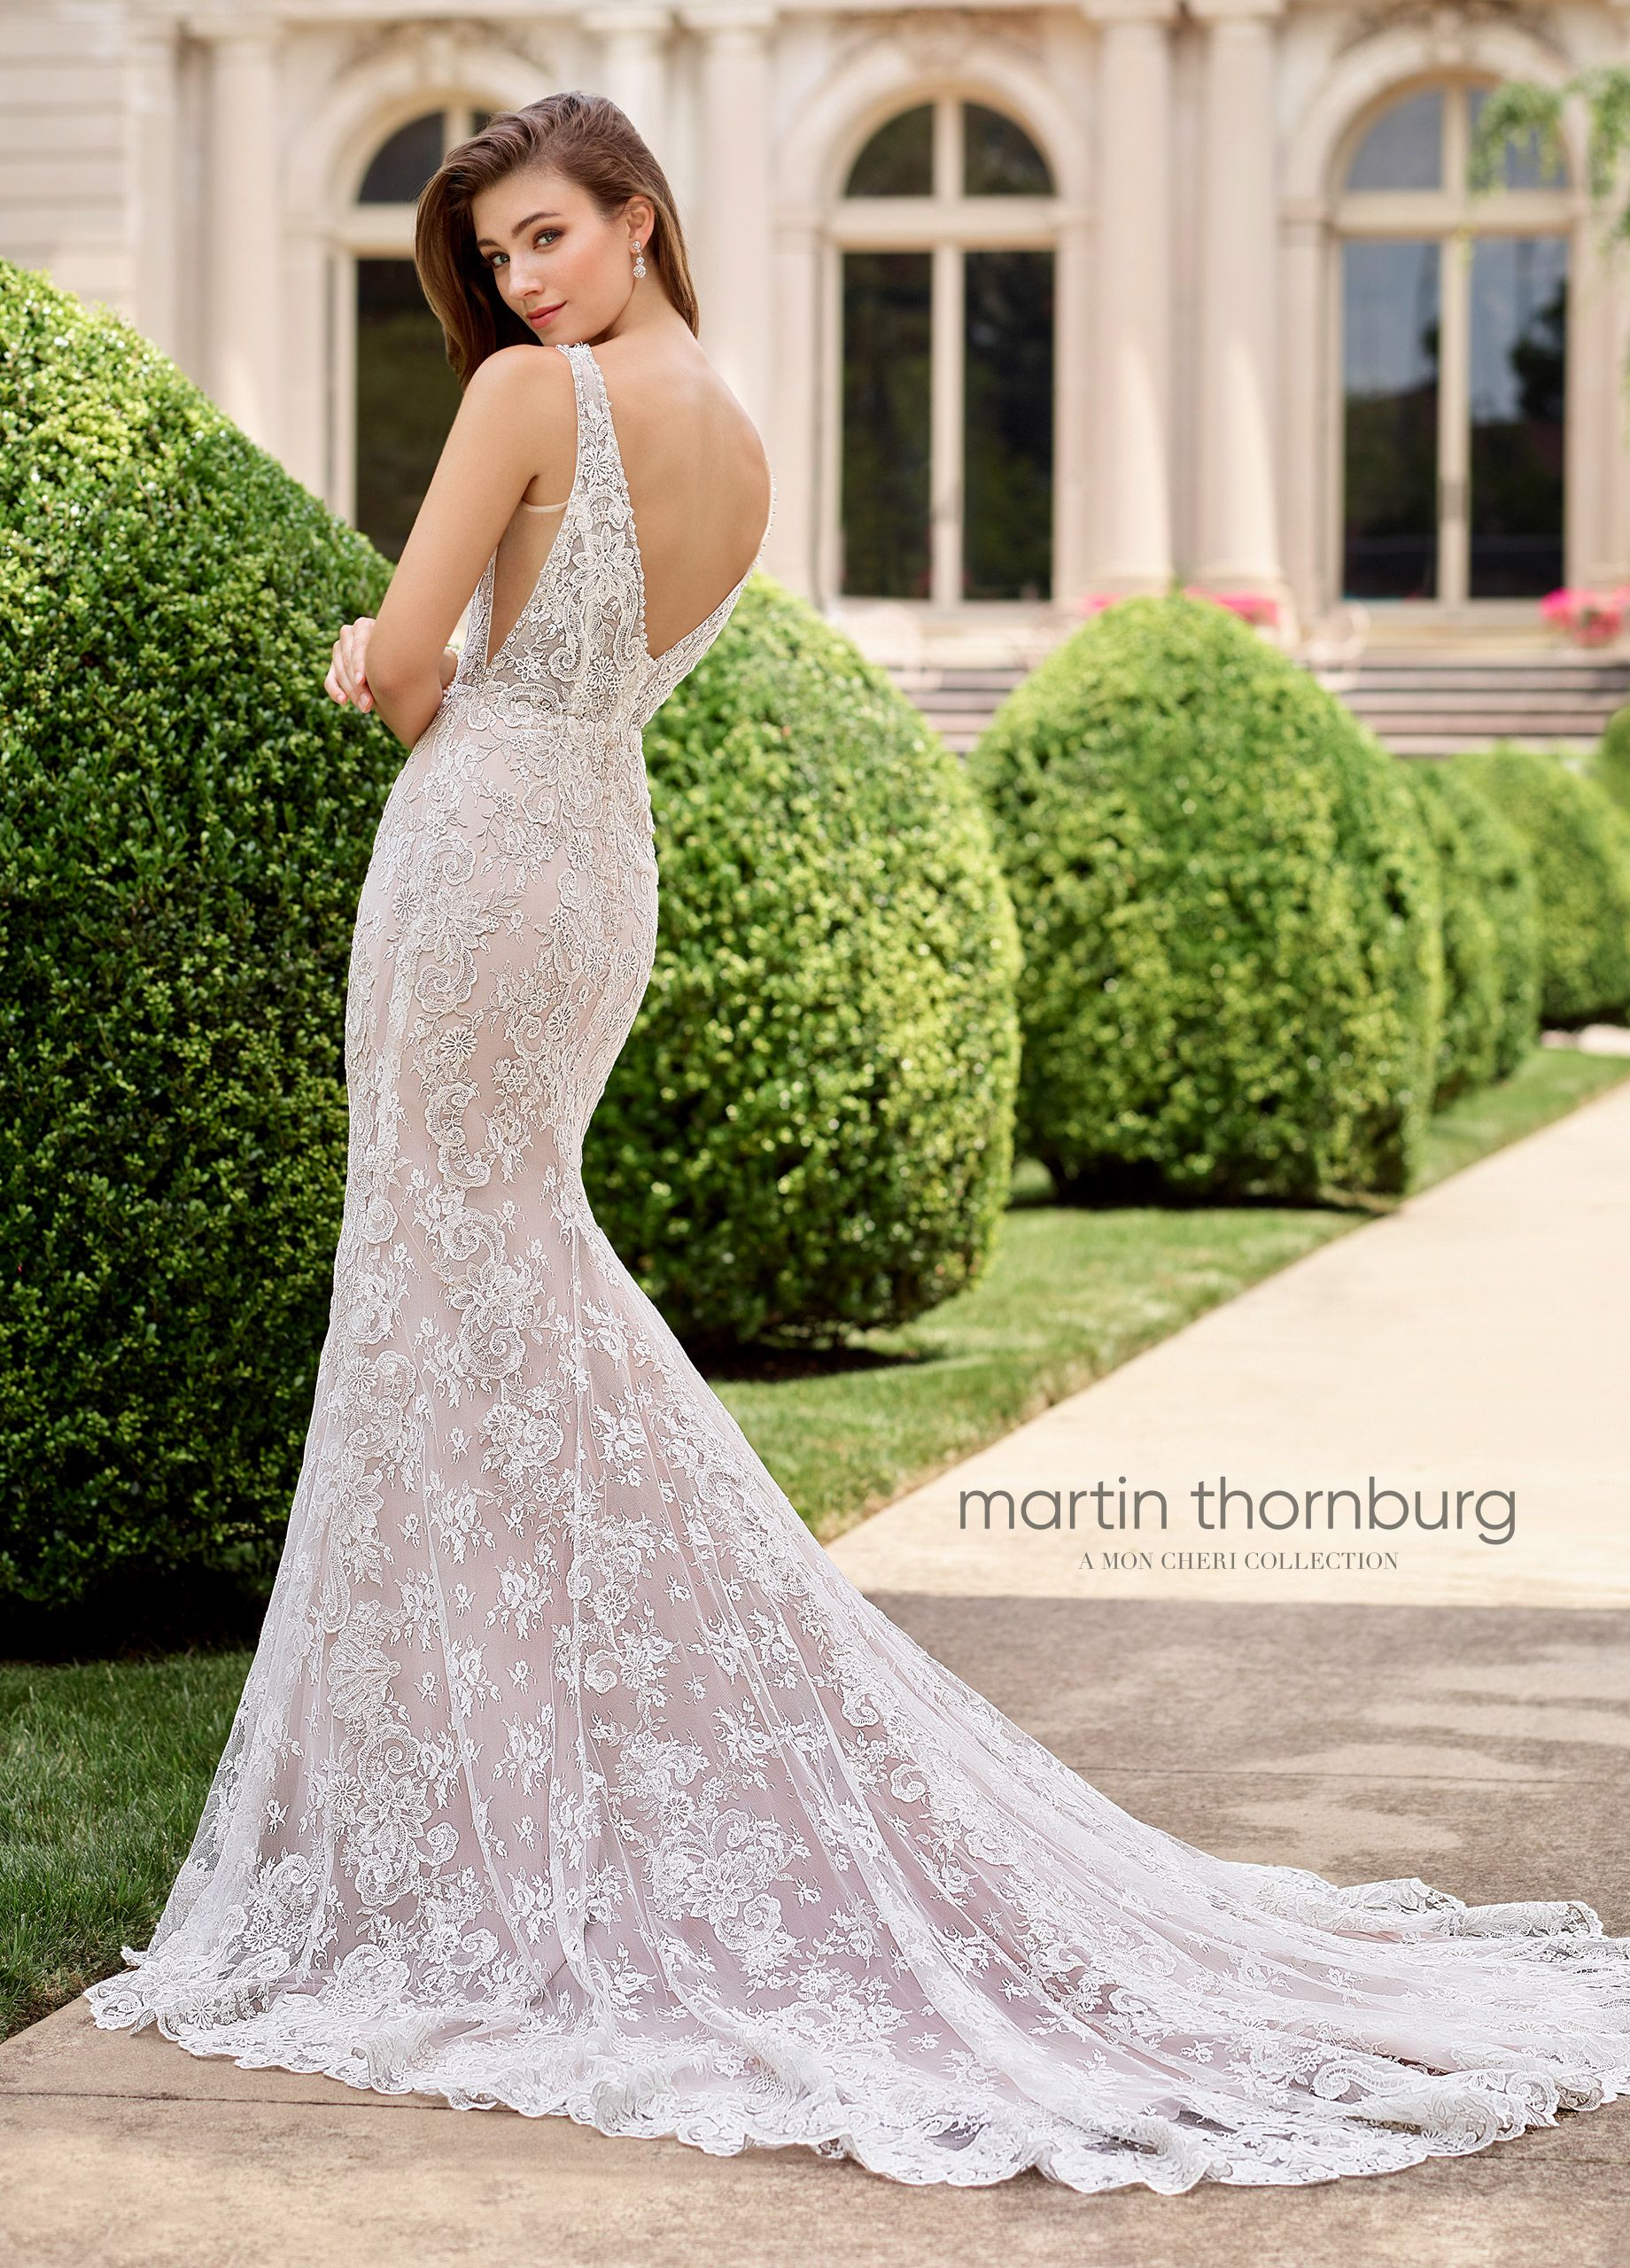 Martin thornburg wedding dresses cappella chapel train